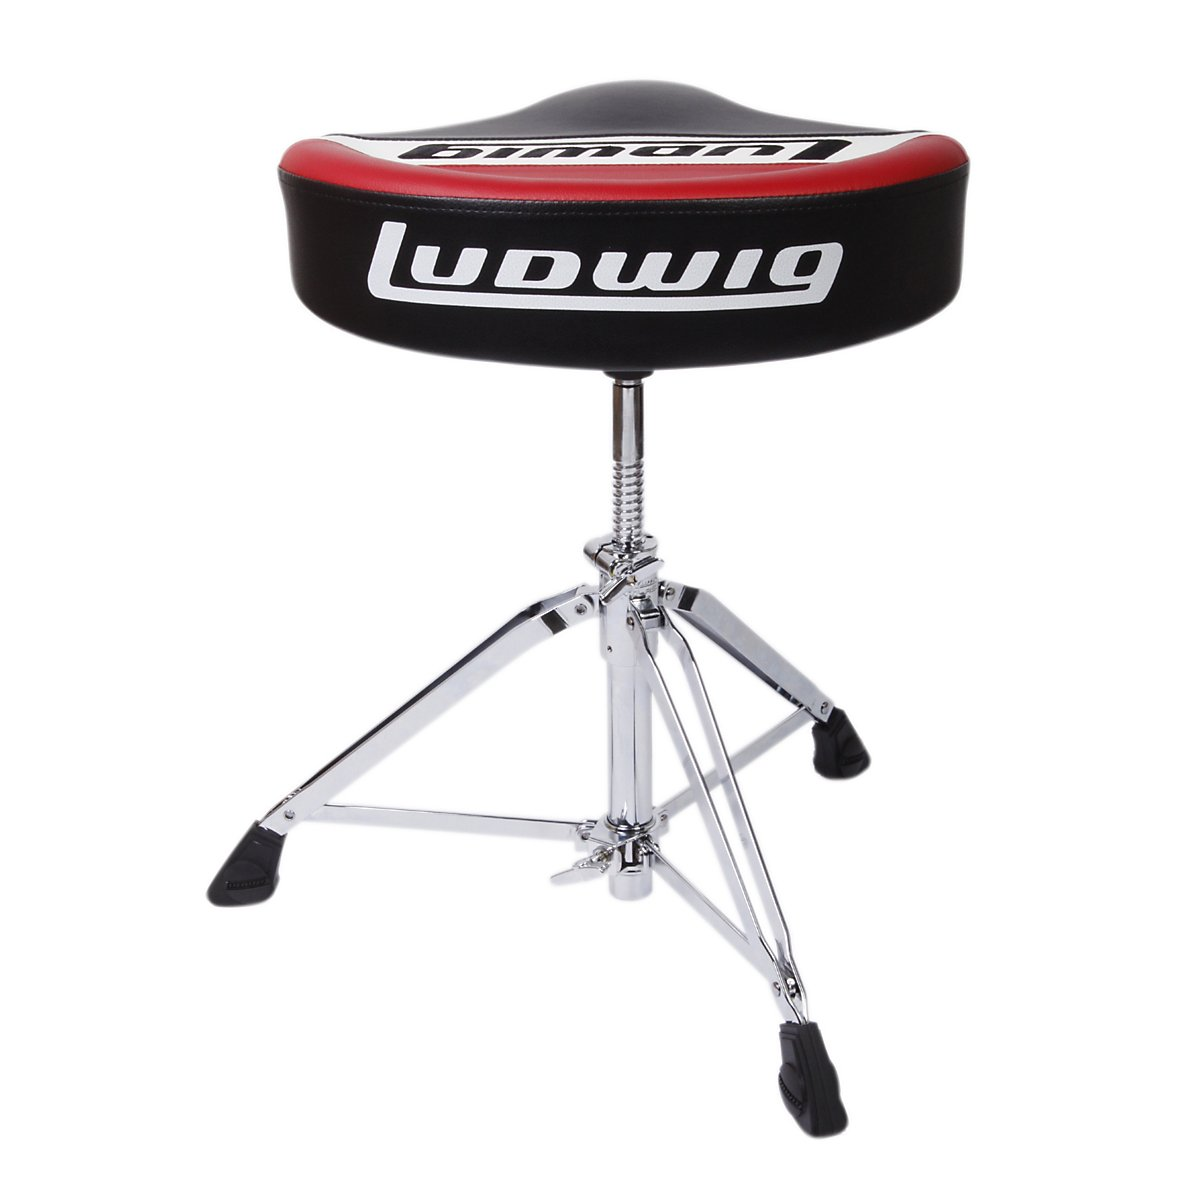 Throne Ludwig LAP50TH Atlas Pro Saddle Lud-1373